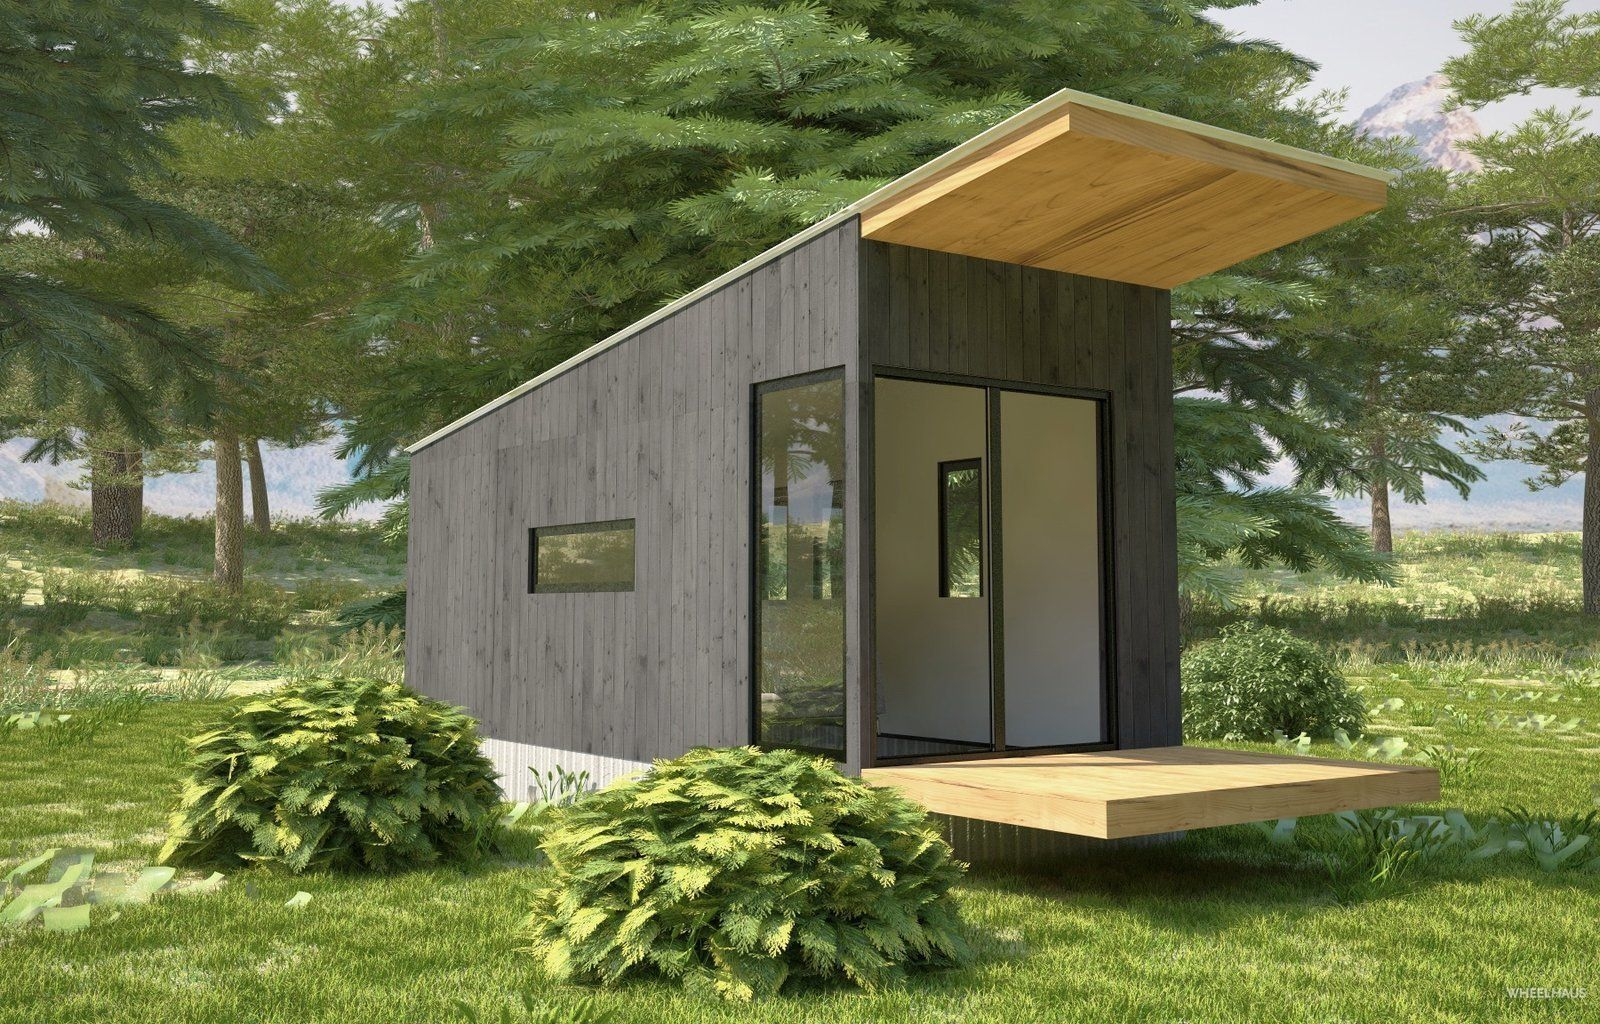 These Customizable Modular Homes Can Make Your Tiny House Dreams